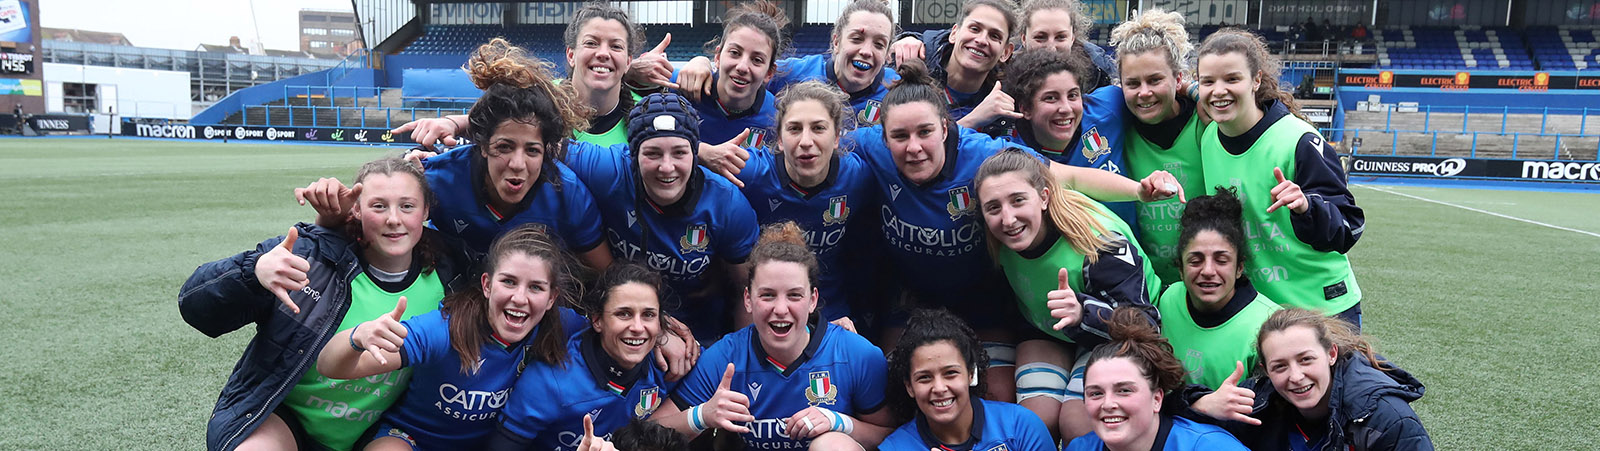 ALLRUGBY rivista italiana del rugby - rugby femminile